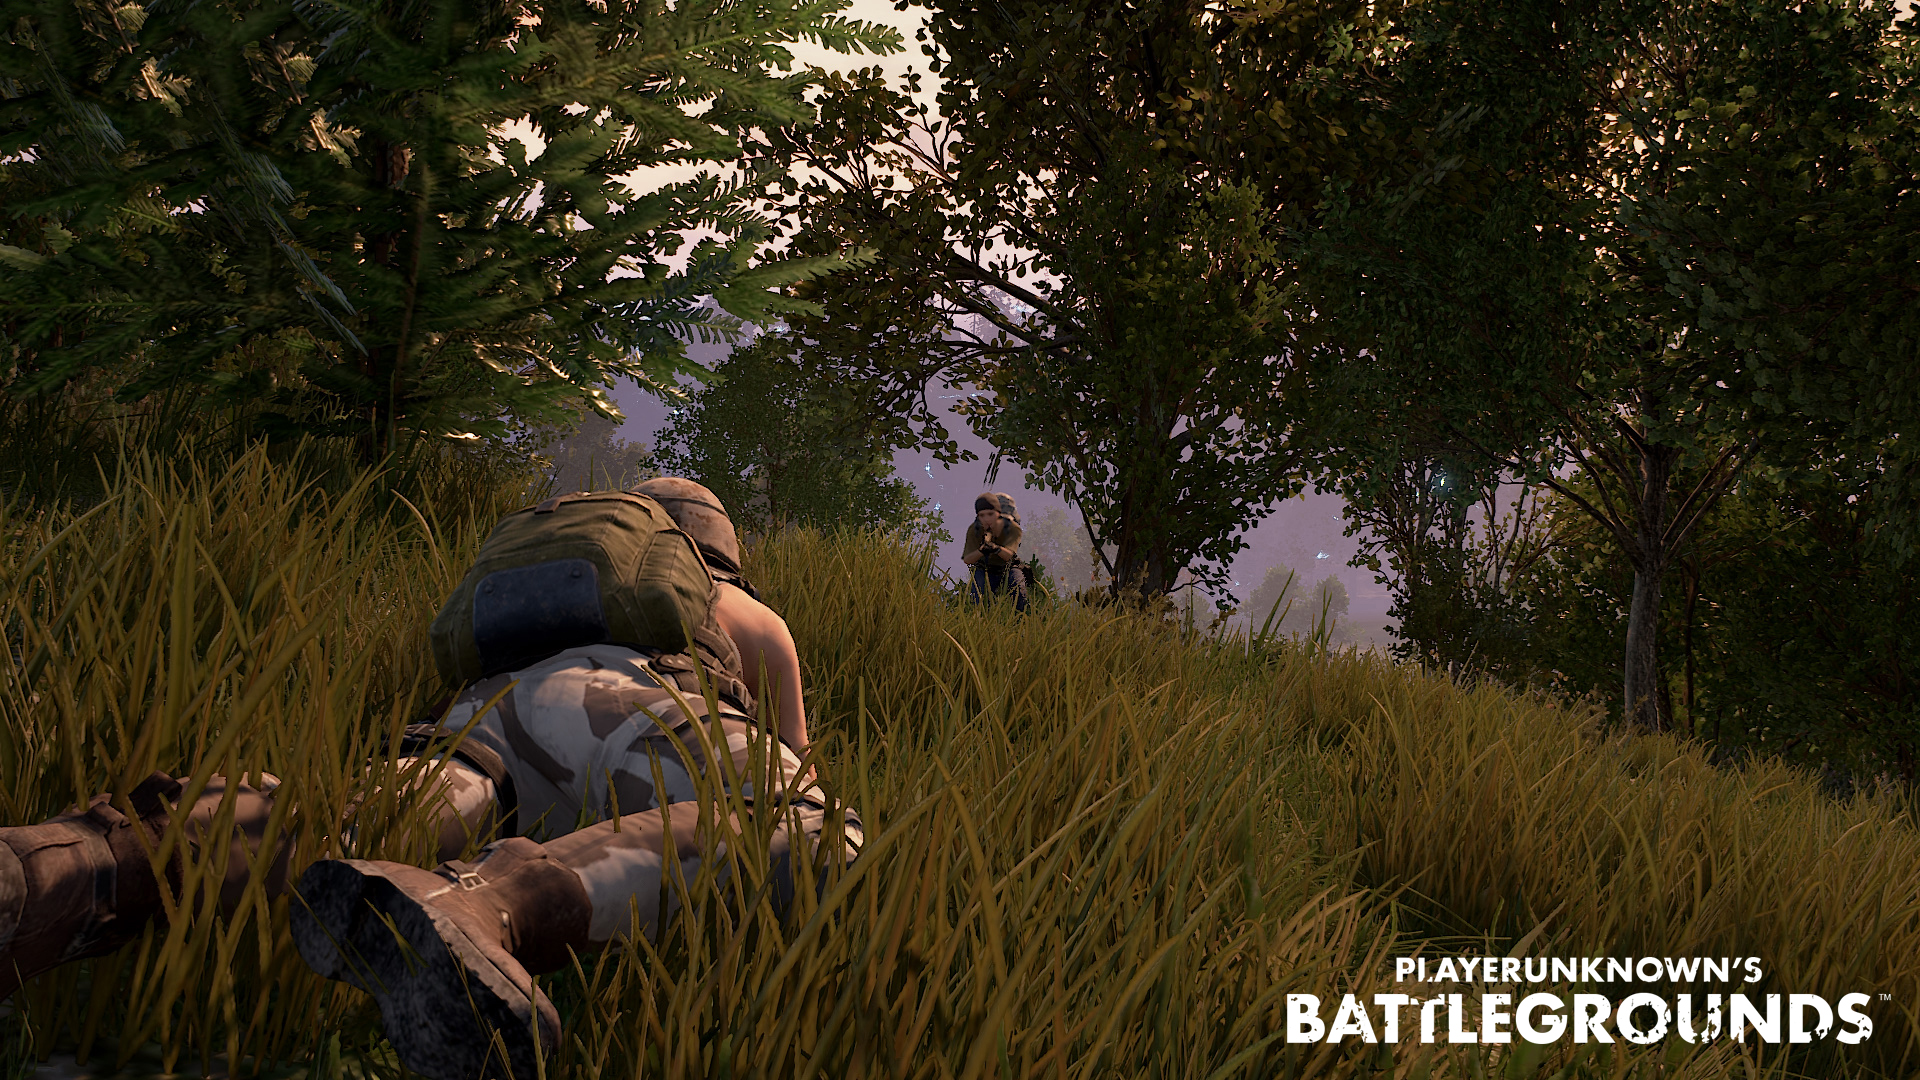 playerunknown s battleground will make you suffer if you don t have